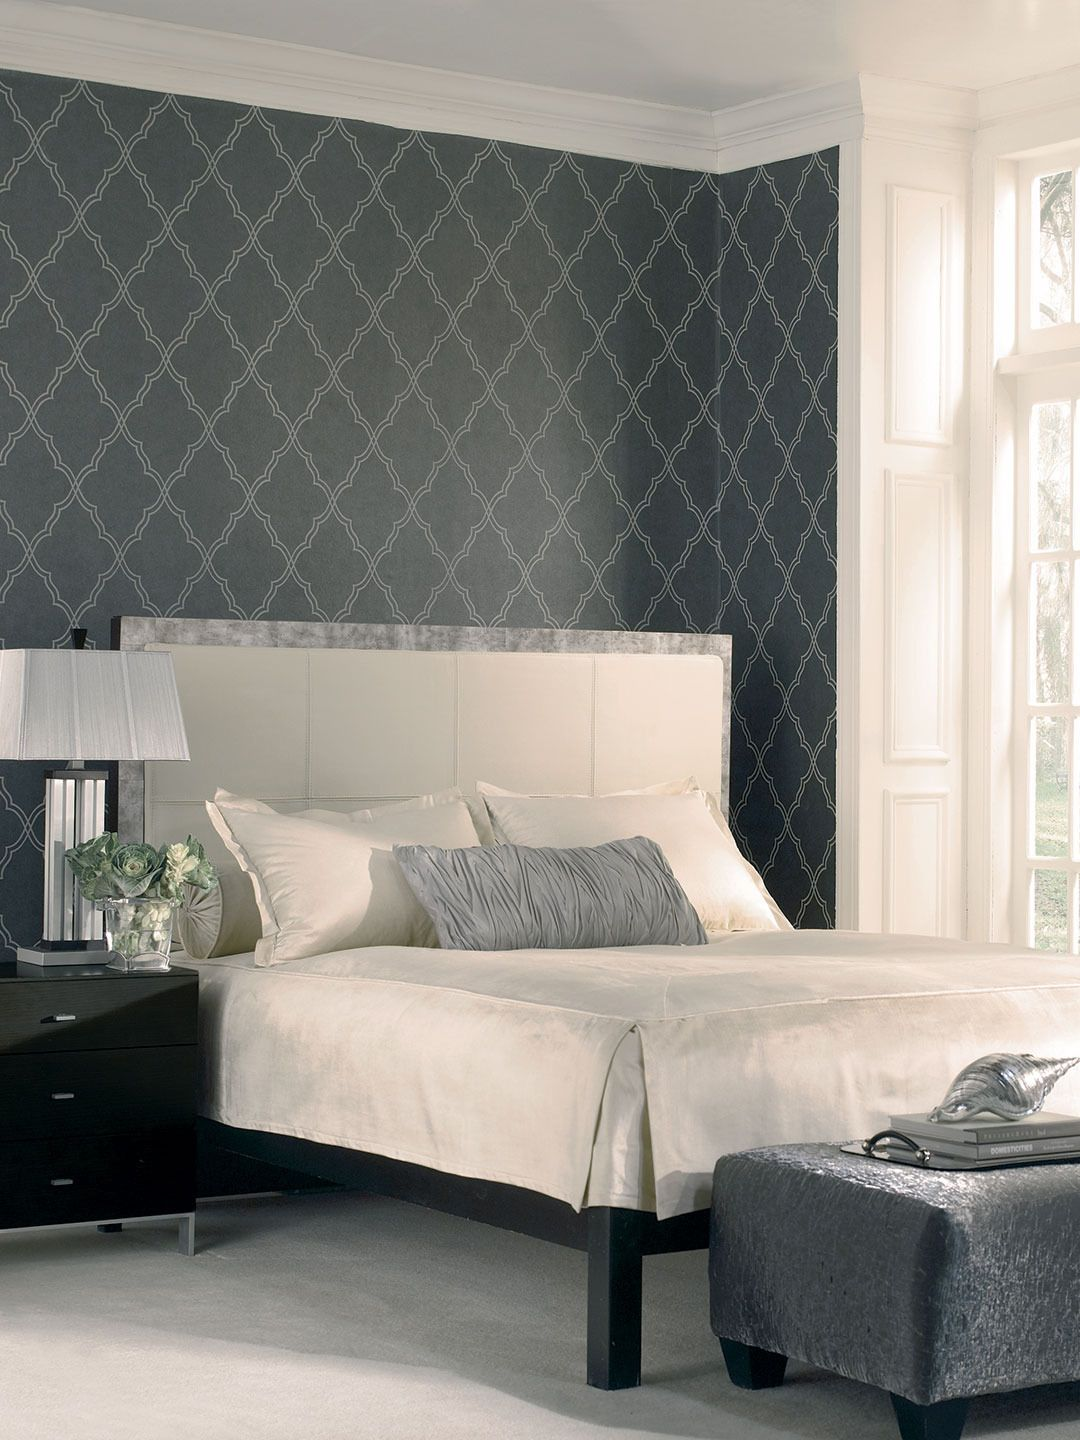 Candice Olson Lattice Wallpaper by York Wallcoverings at